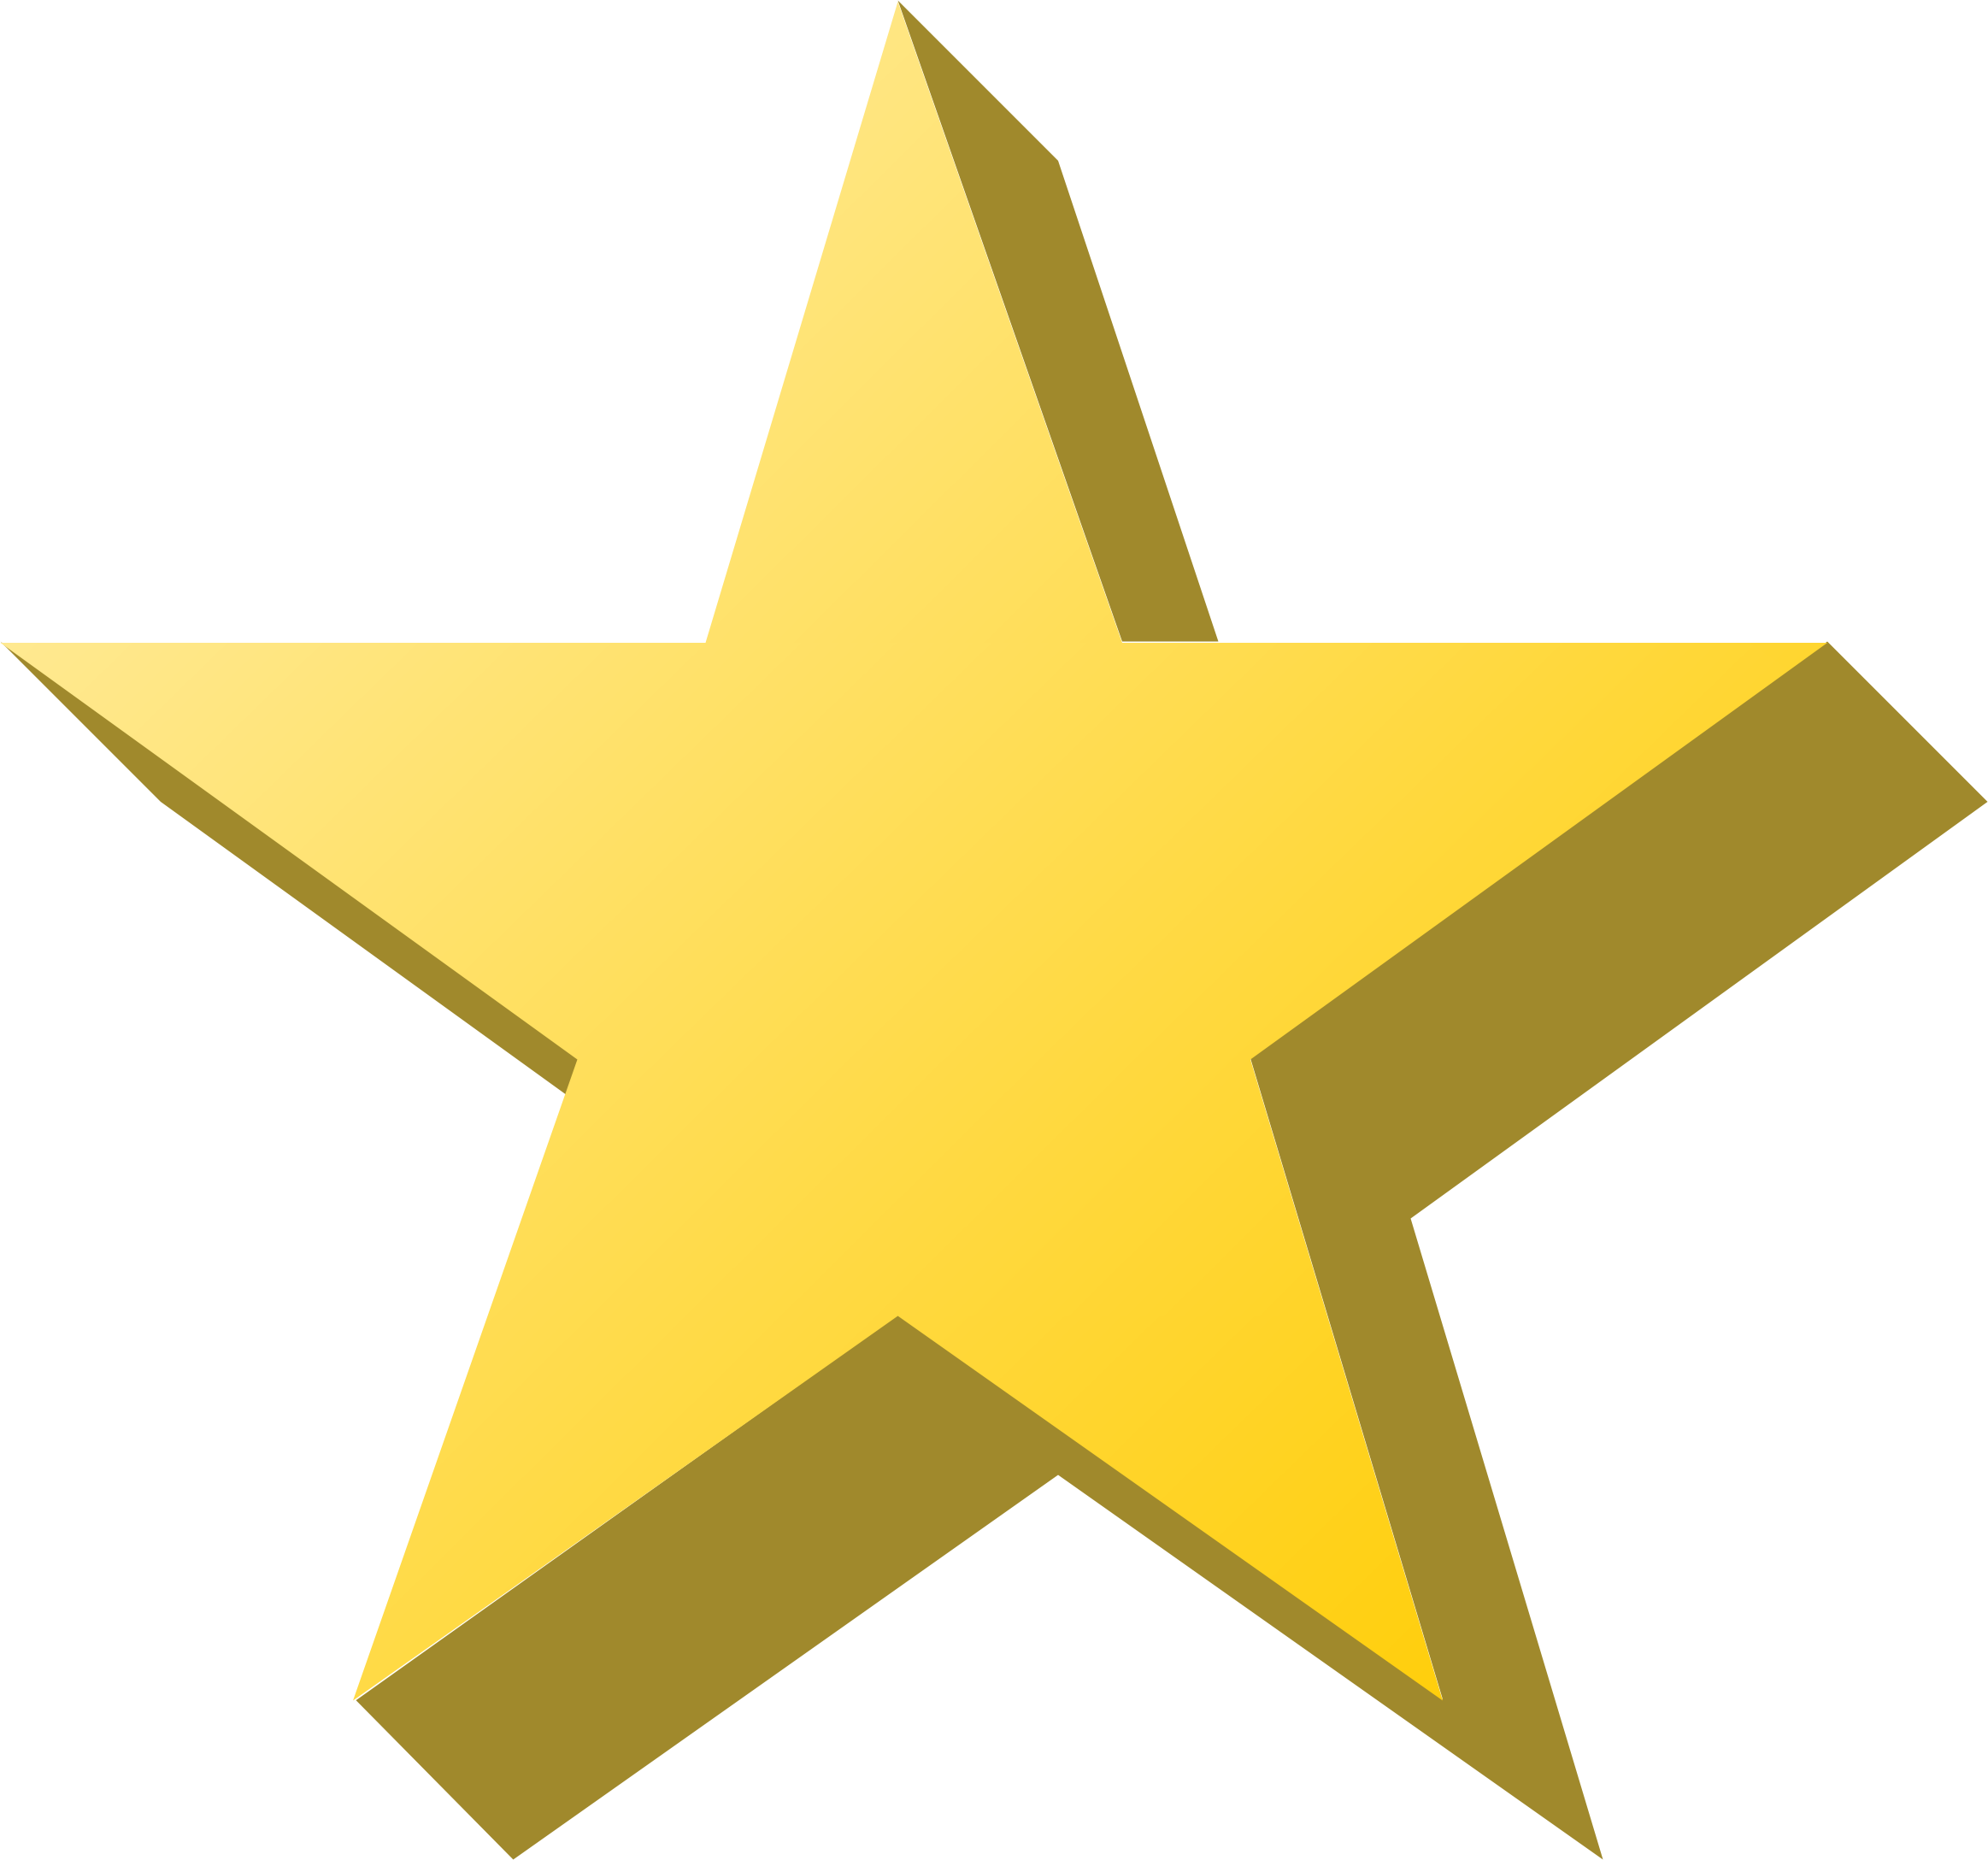 Star animation clipart image transparent stock Clipart - star image transparent stock